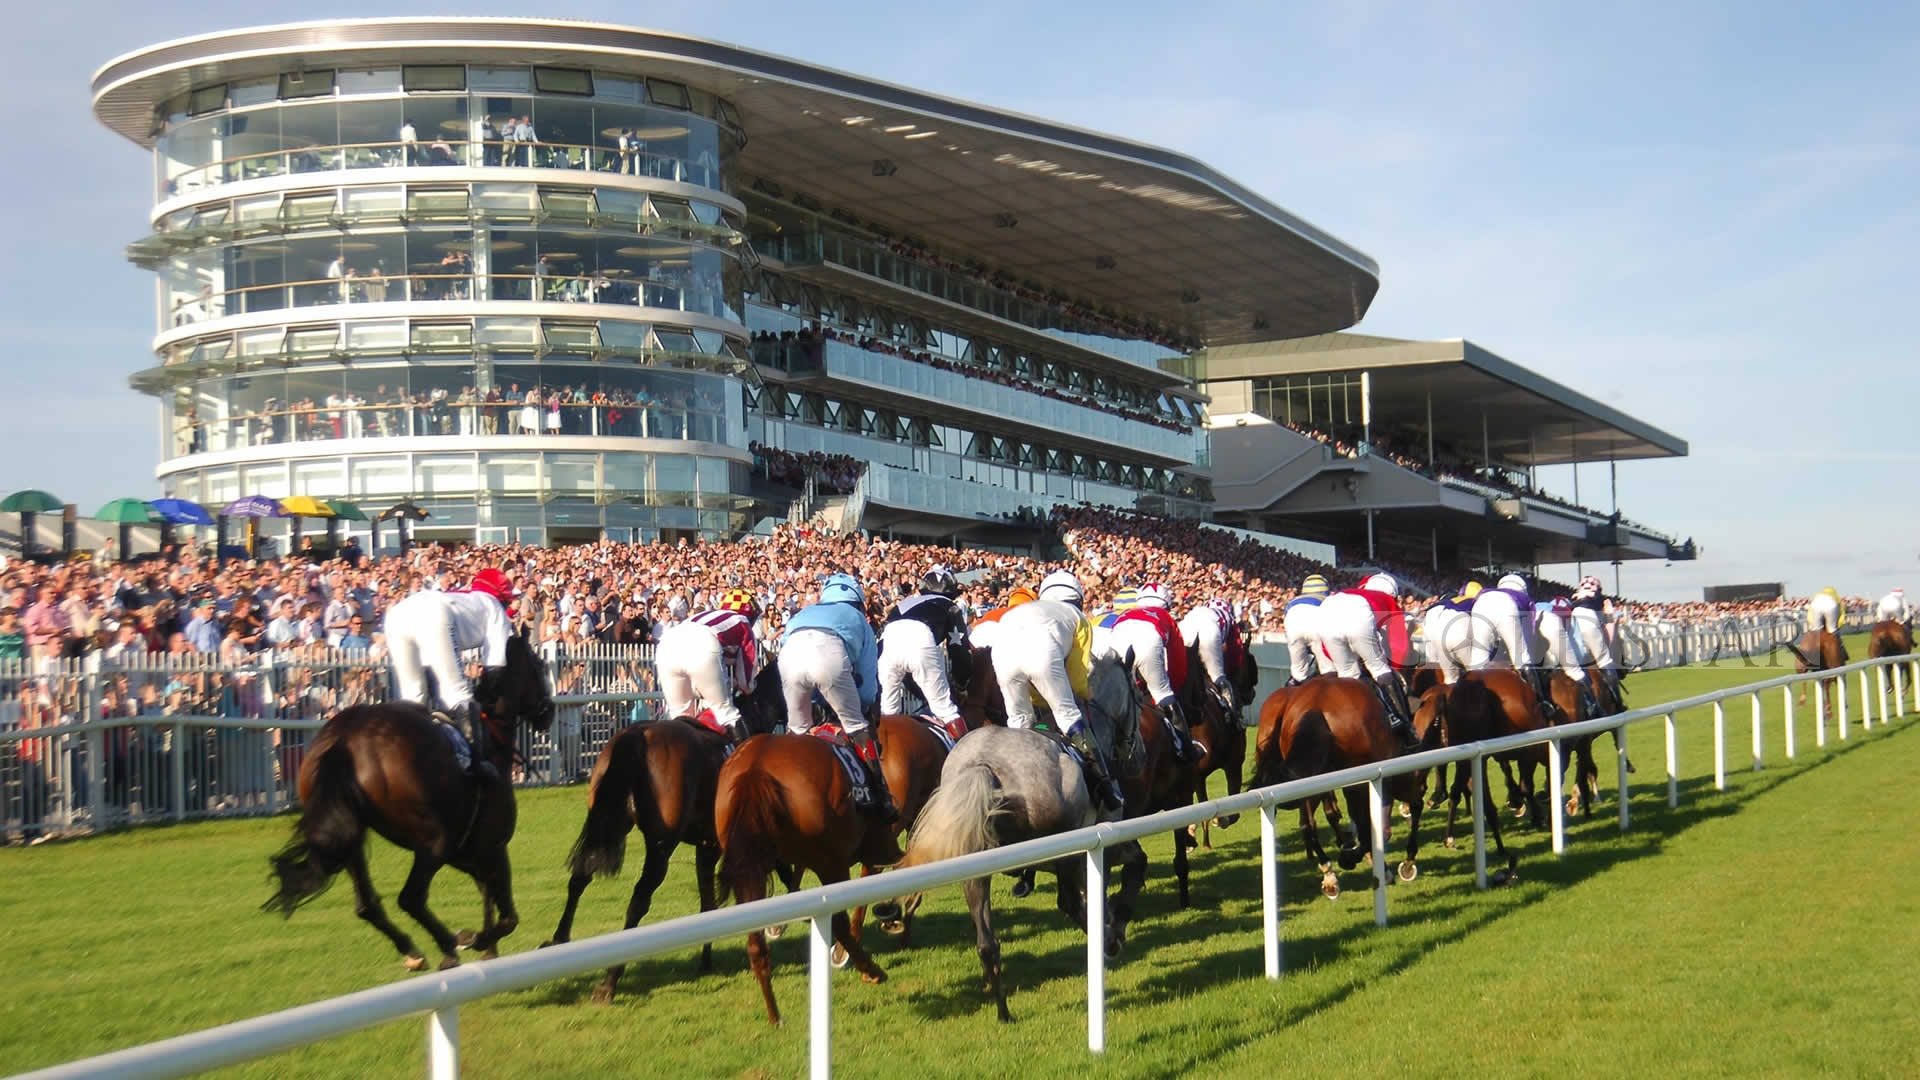 The Galway Races 27th July – 2nd August 2015